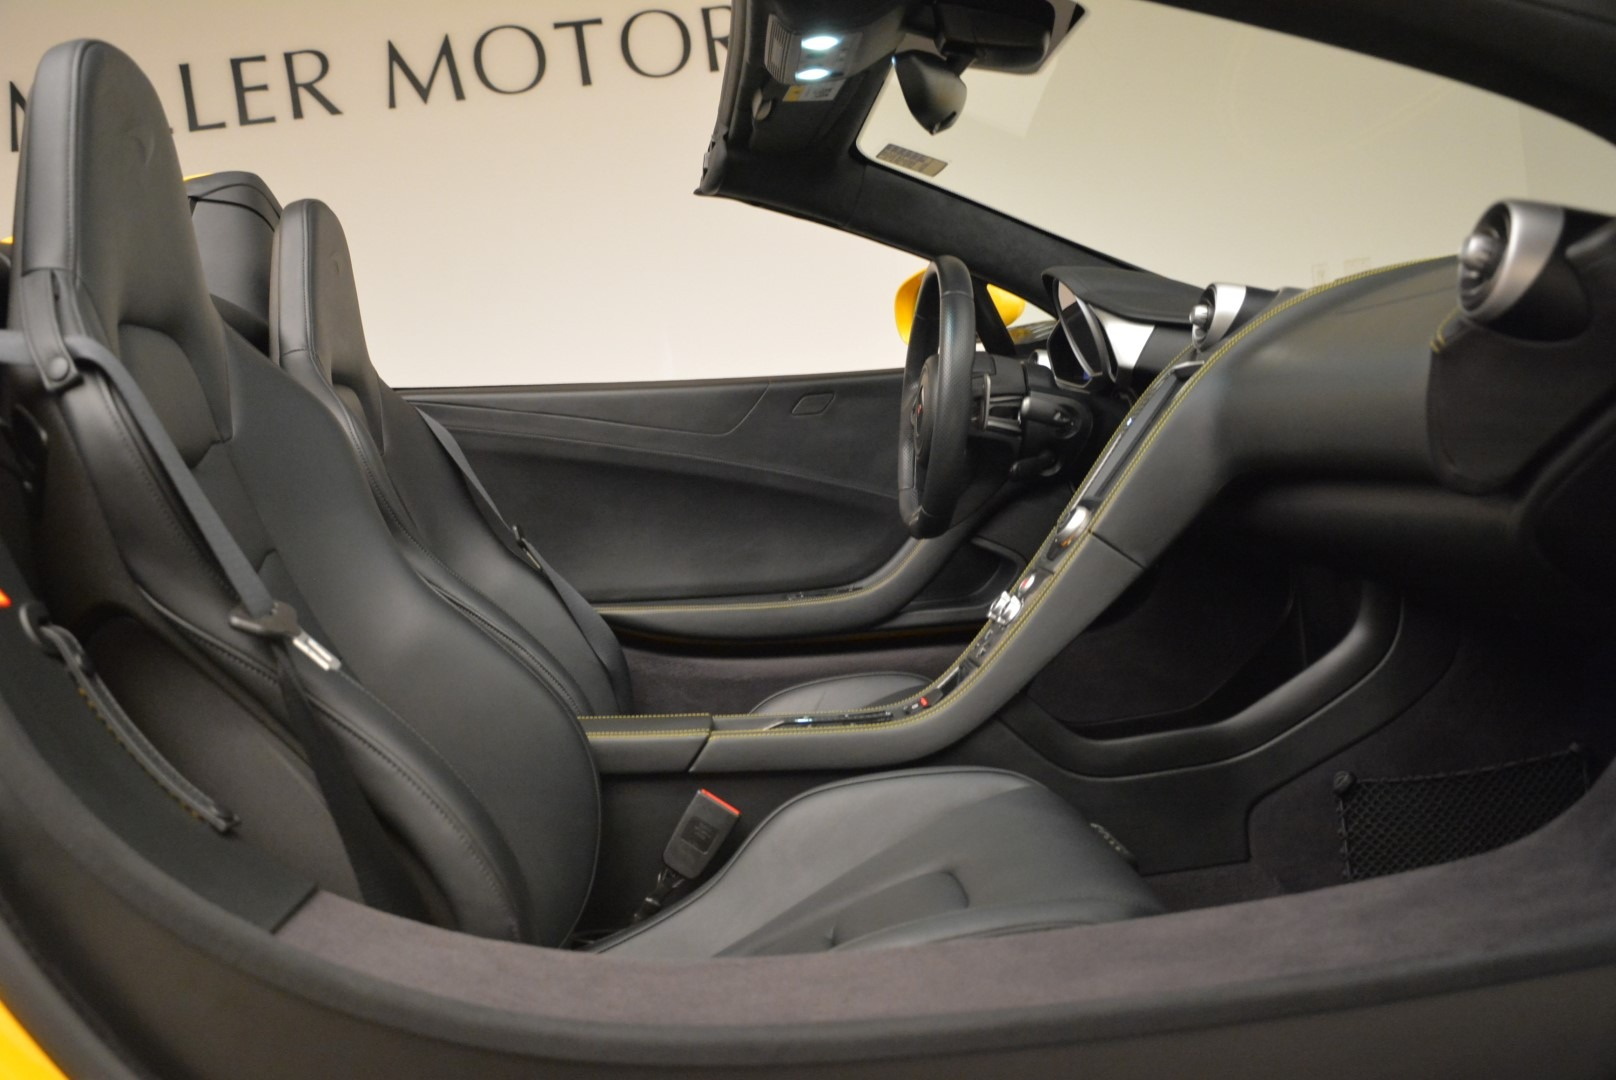 Used 2014 McLaren MP4-12C Spider For Sale In Greenwich, CT 2057_p30